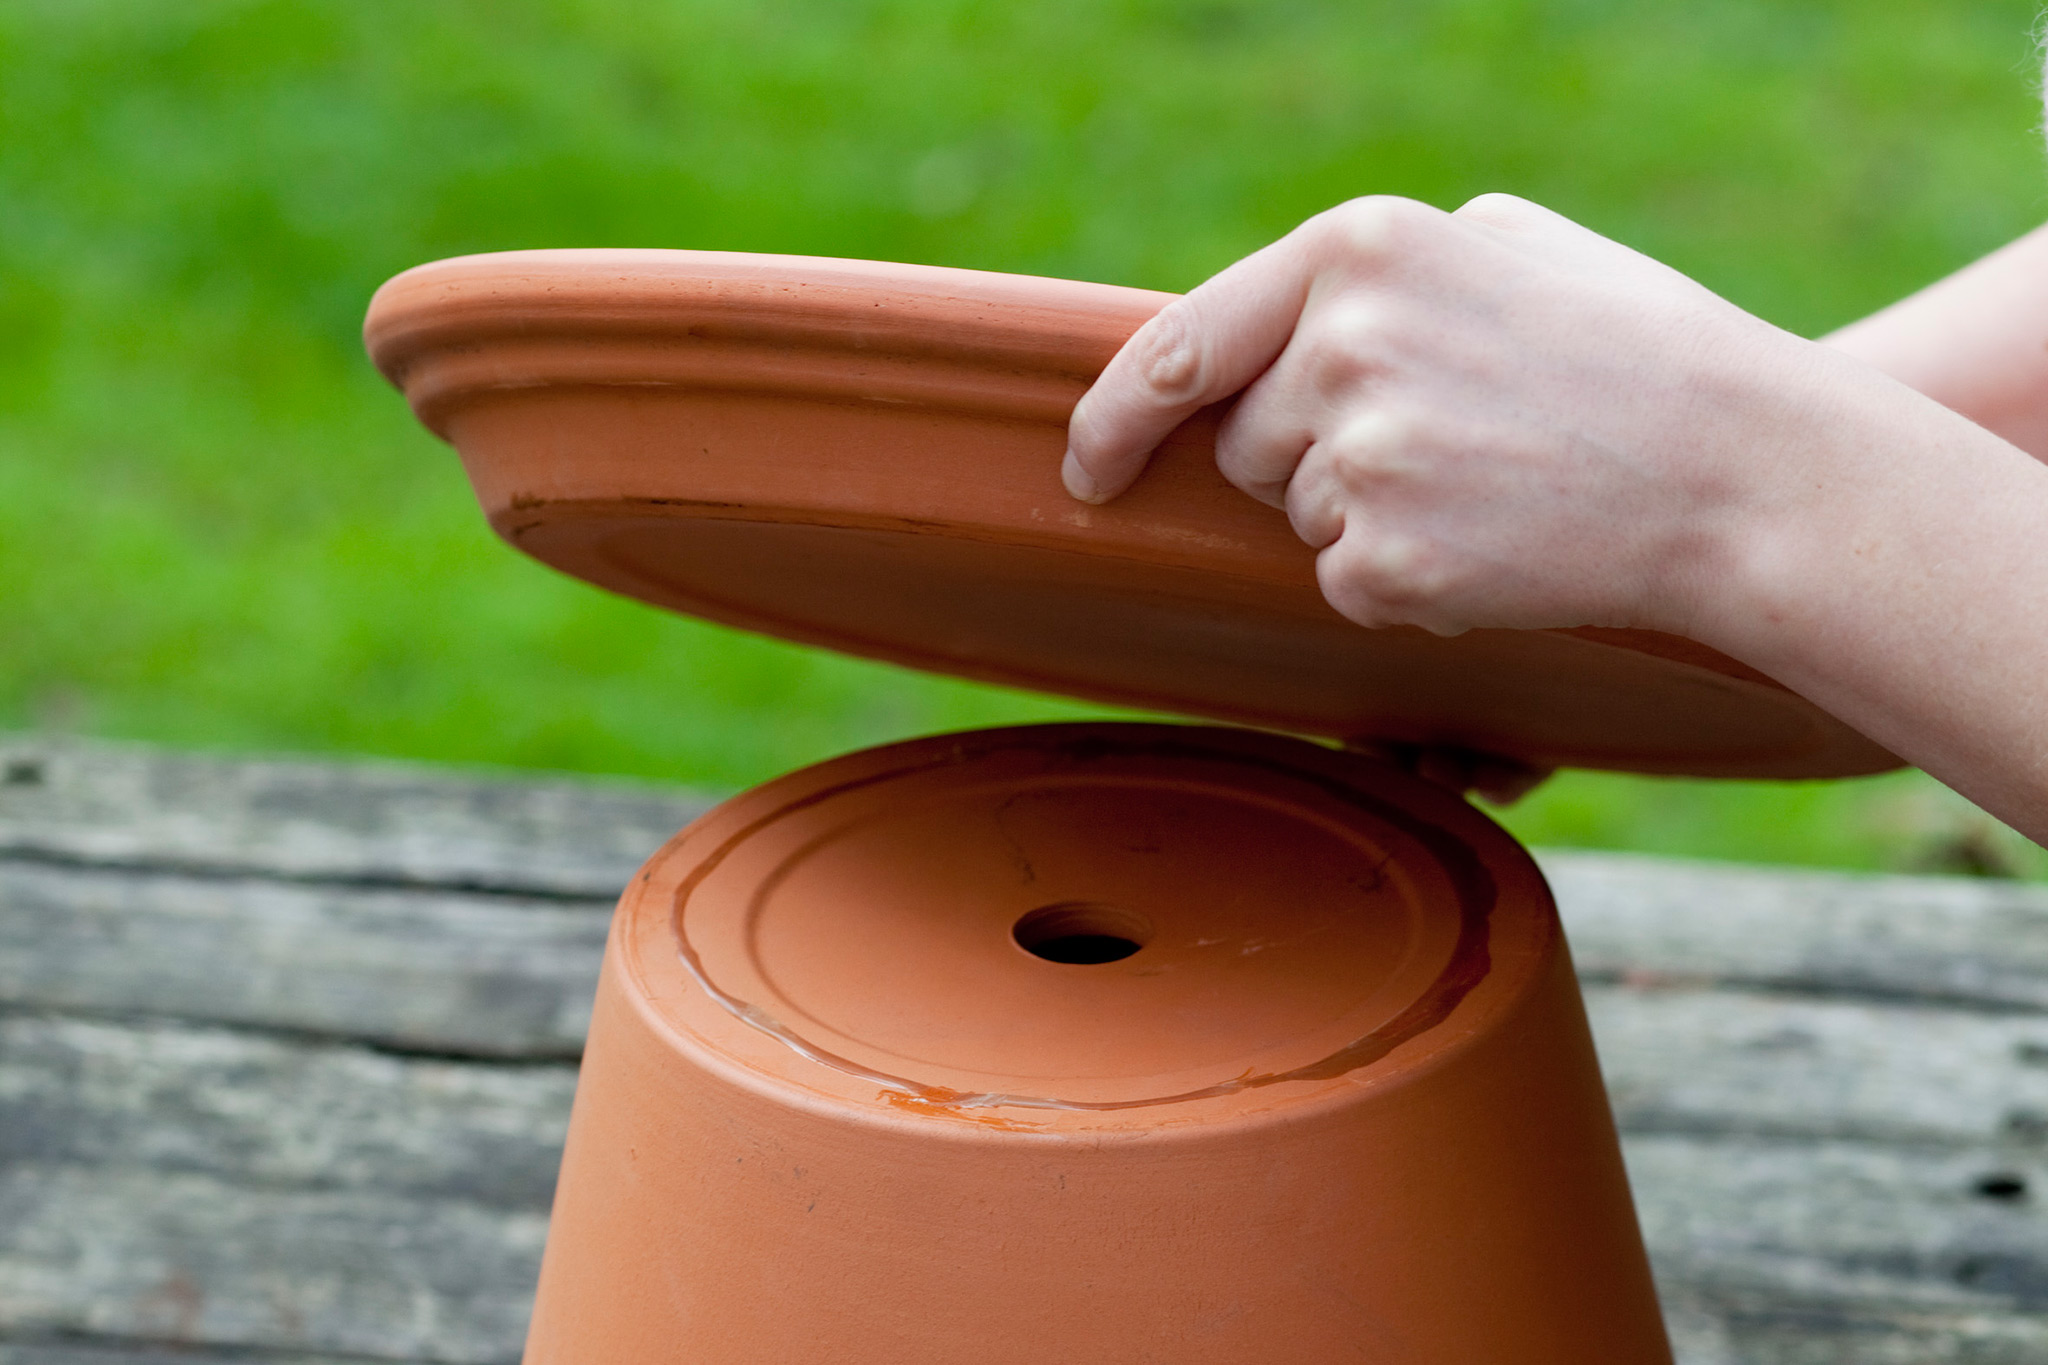 attaching-a-terracotta-saucer-2